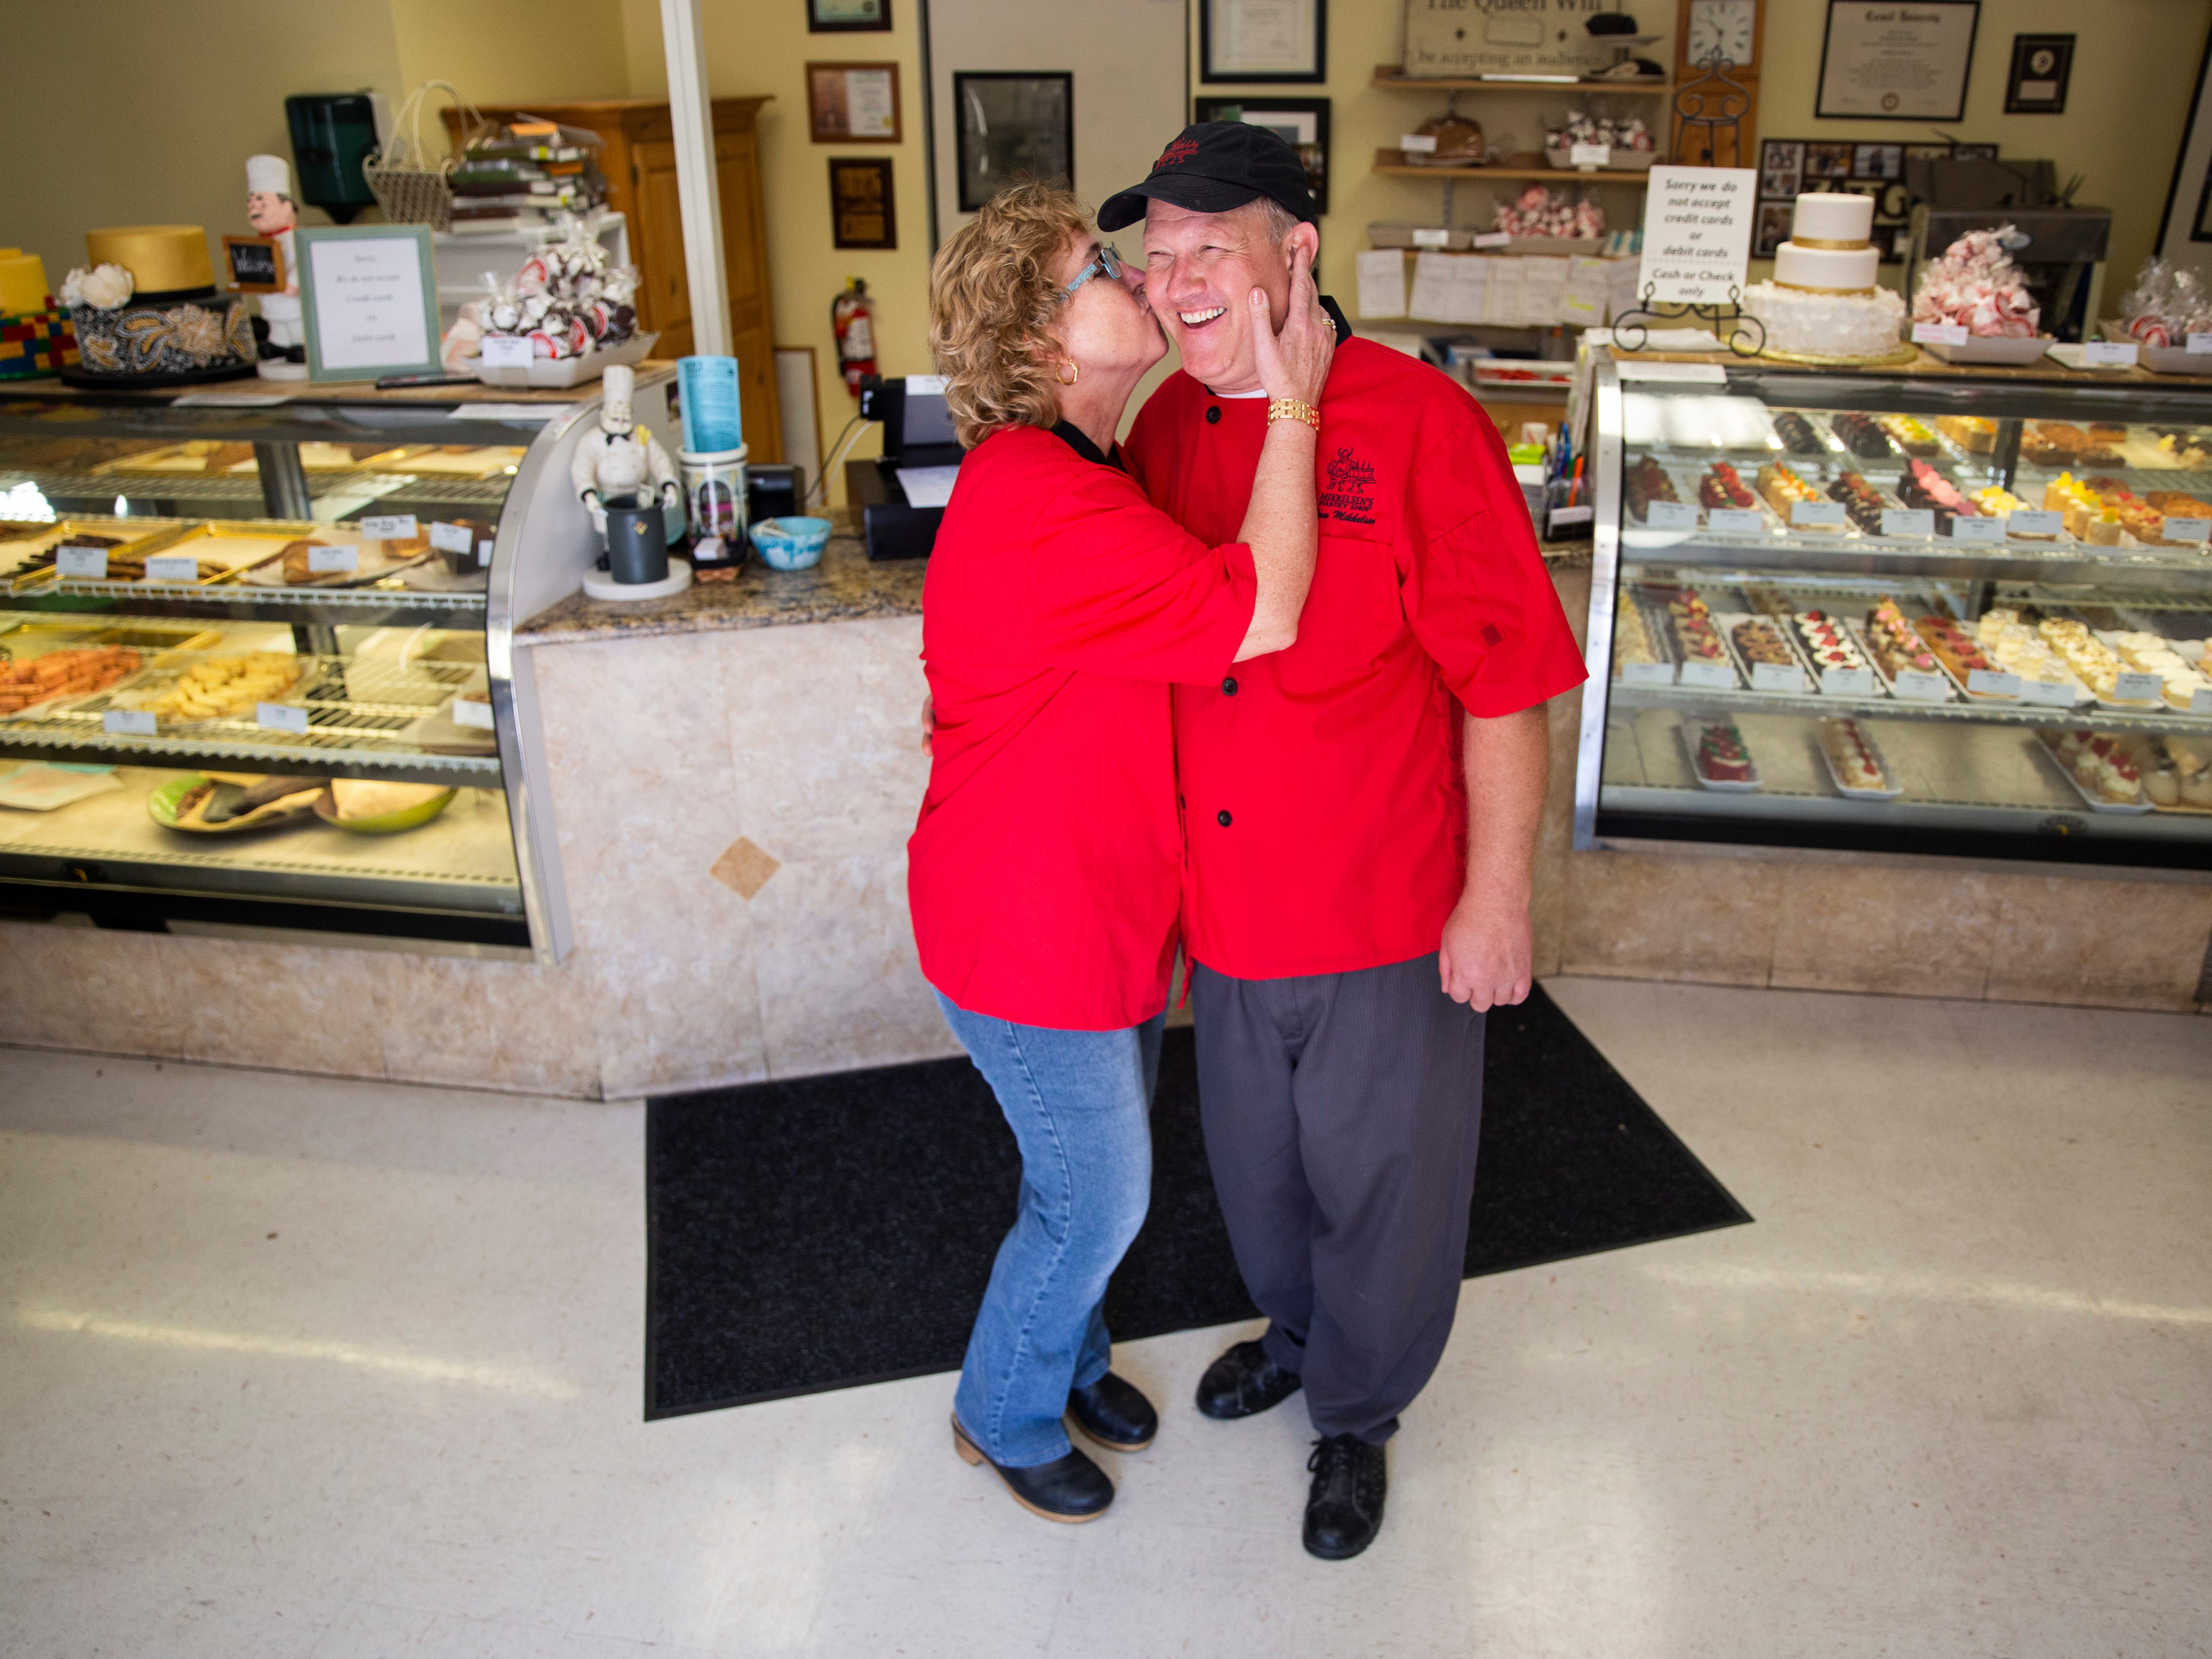 Elizabeth Mikkelsen kisses her husband and business partner, Paw Mikkelsen, on the cheek at Mikkelsen's Pastry Shop in North Naples on Thursday, Feb. 7, 2019.